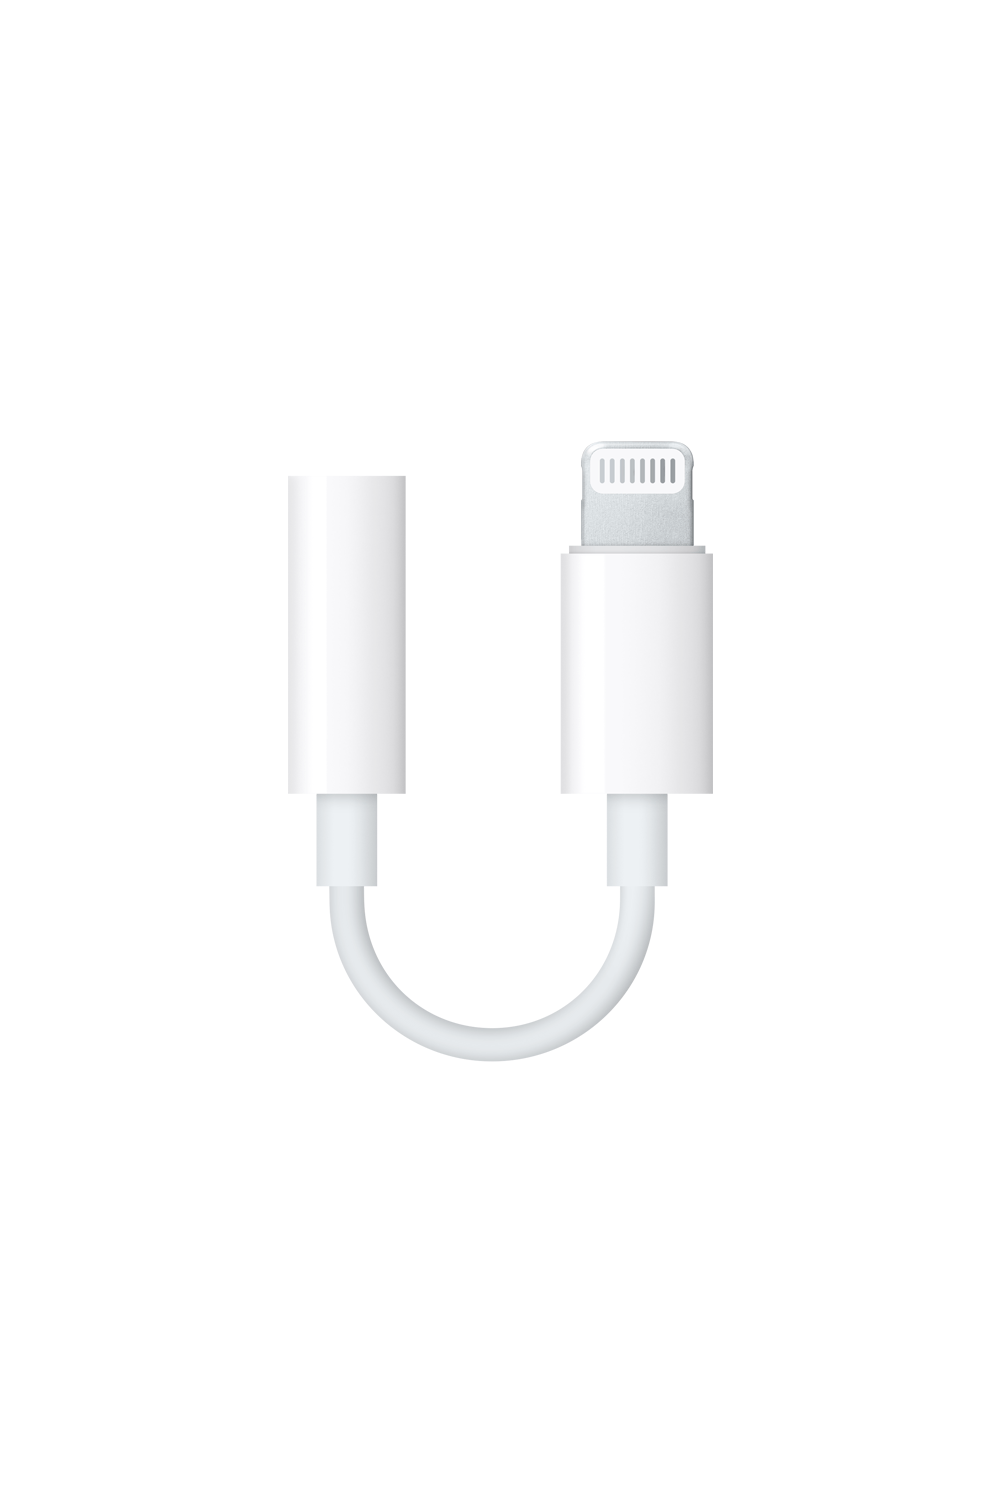 Apple Lightning to 3.5mm Headphone Jack Converter